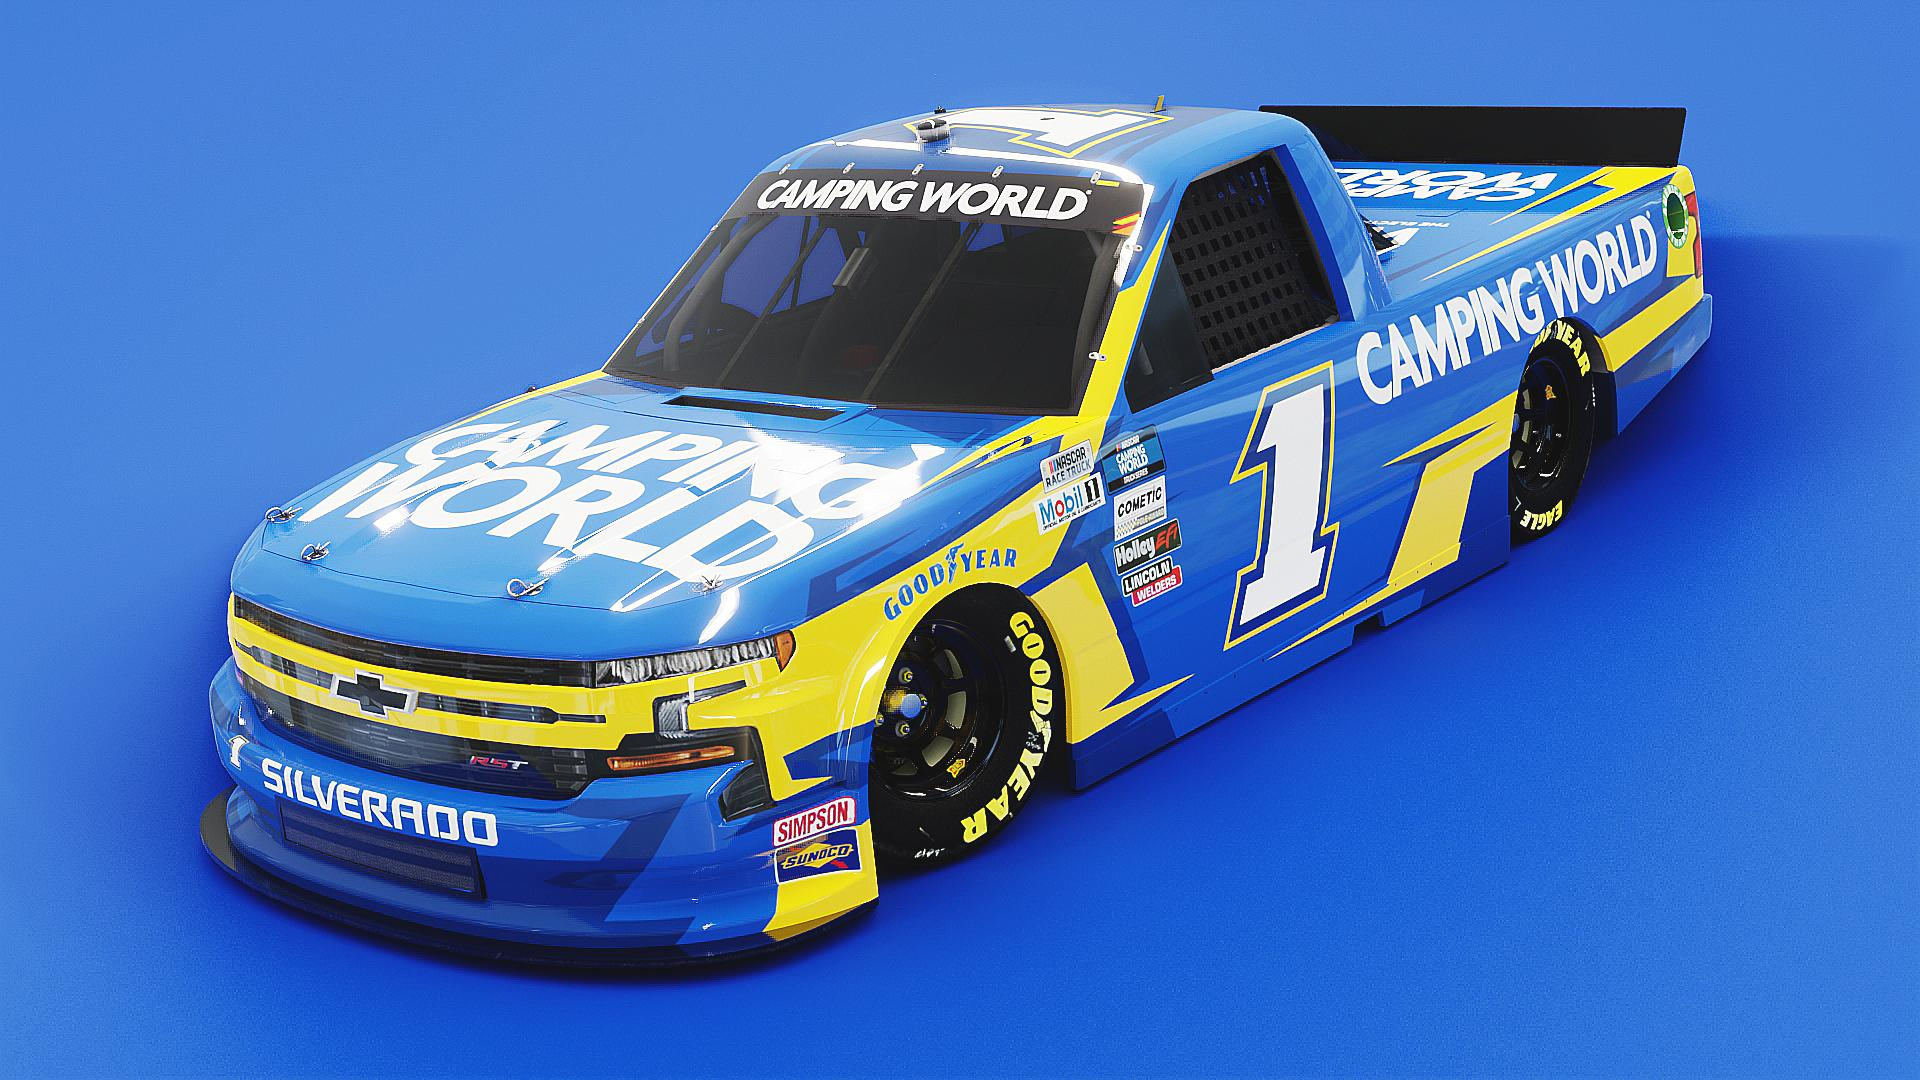 Preview of Camping World Chevrolet Silverado by Noah Sweet